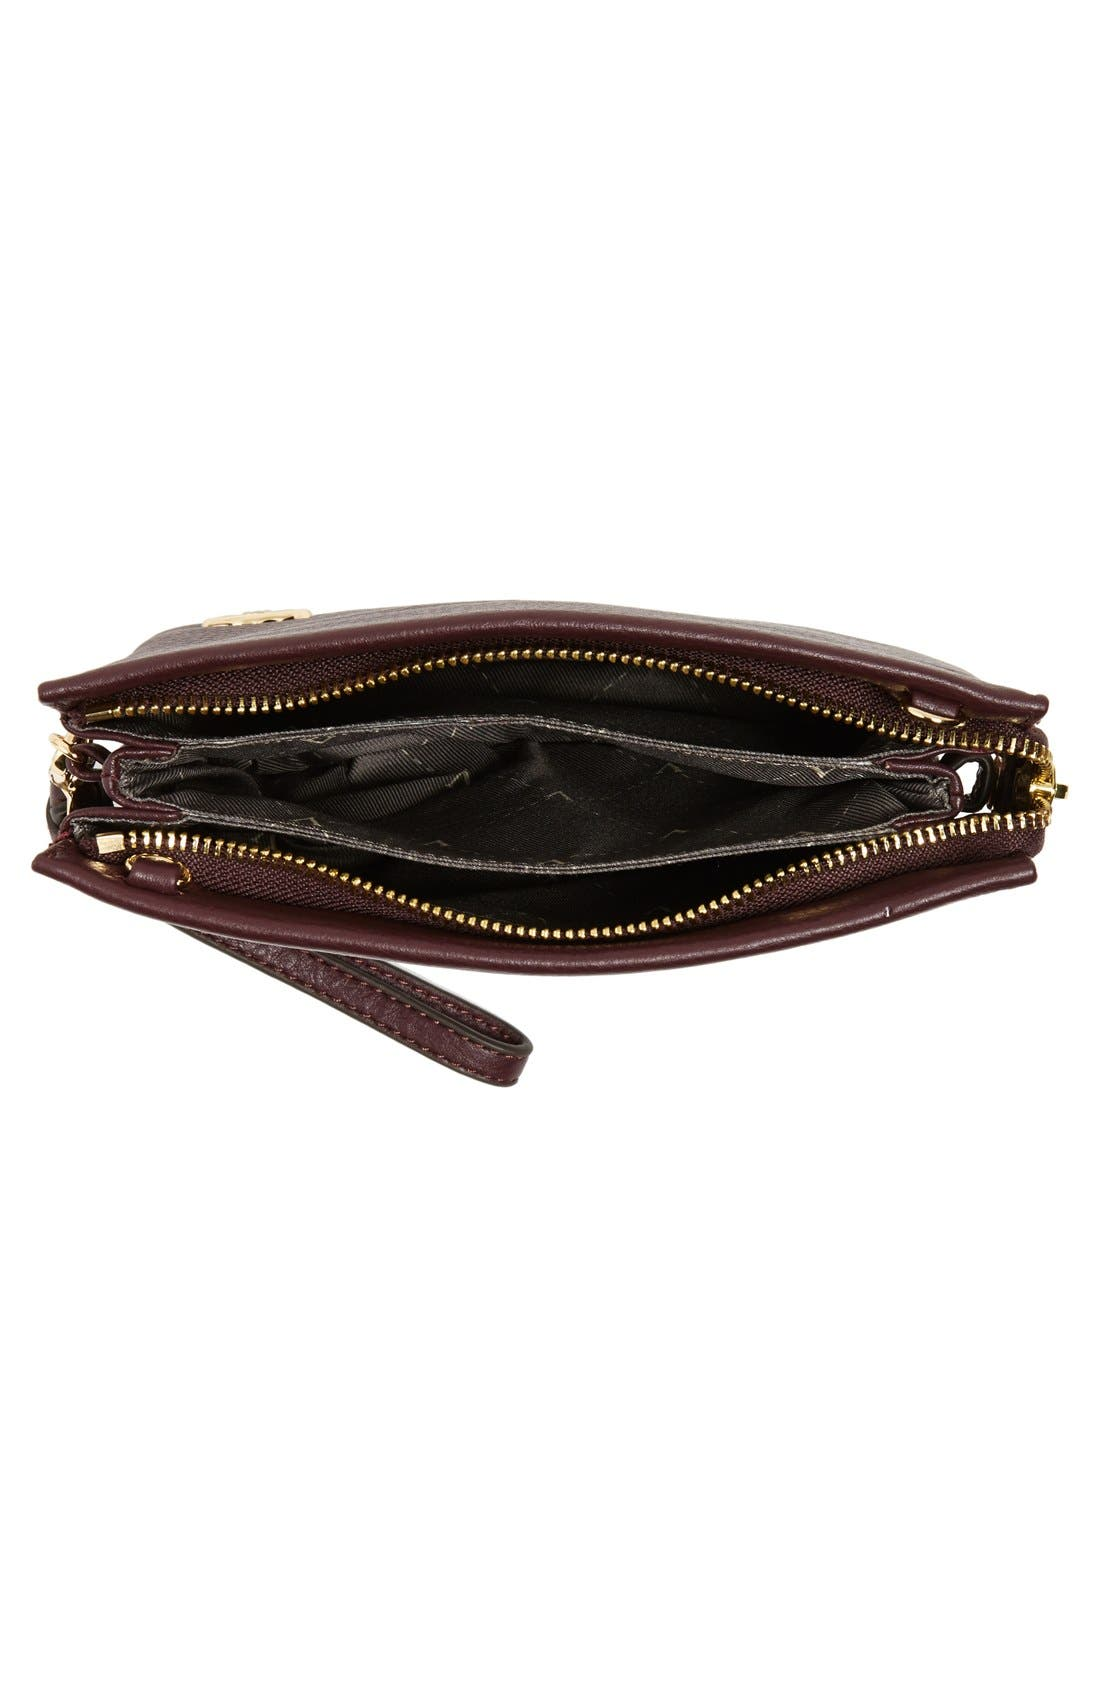 'Cami' Leather Crossbody Bag,                             Alternate thumbnail 109, color,